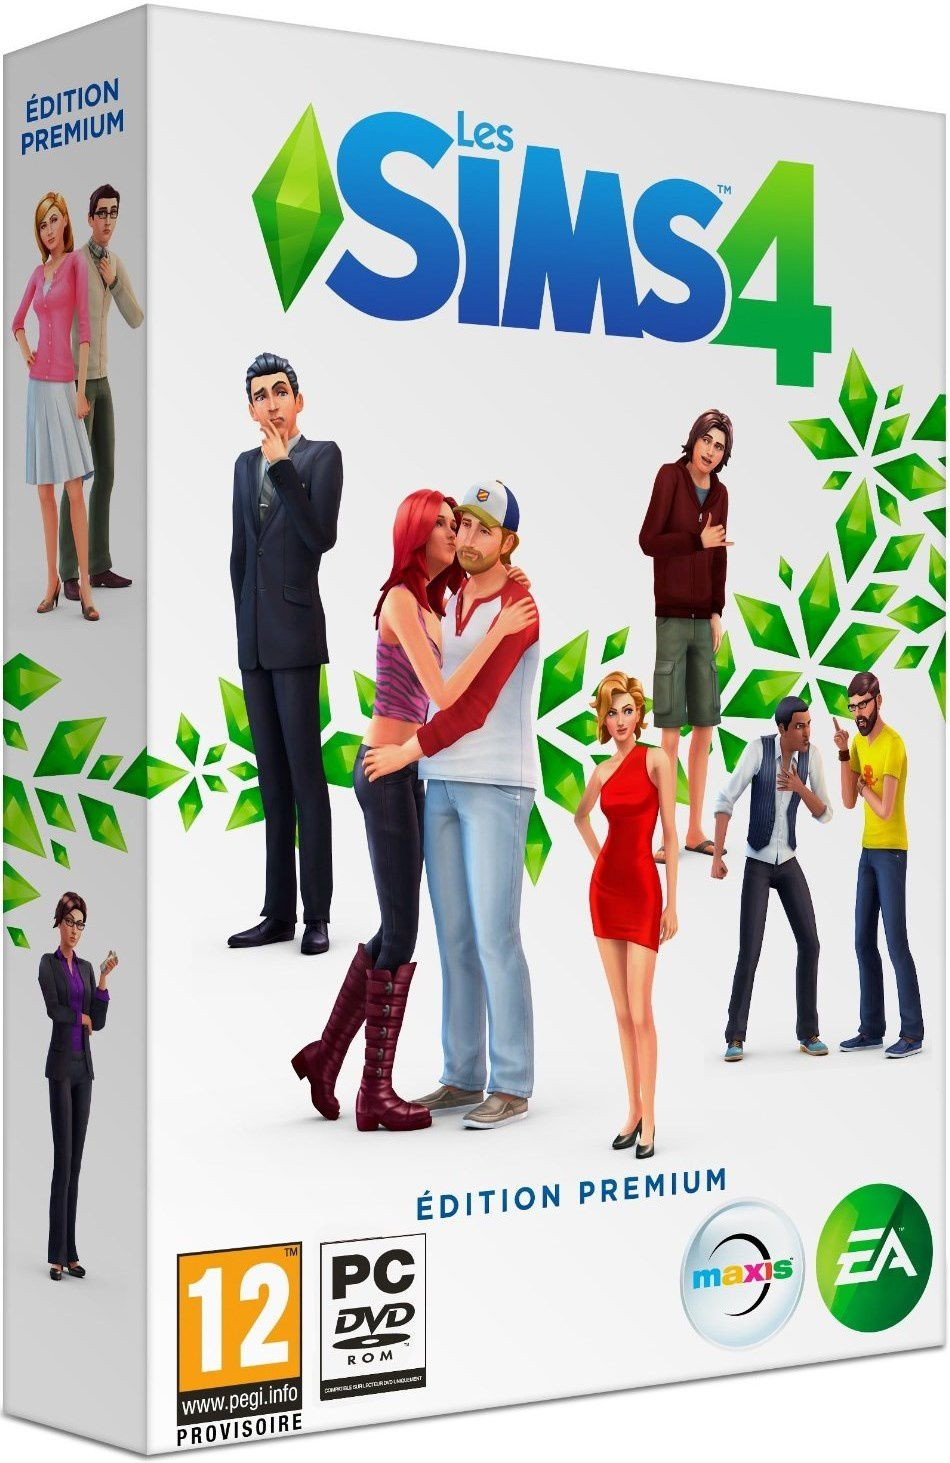 Les Sims 3 Showtime Edition Collector Katy Perry: Everything For The Geeks